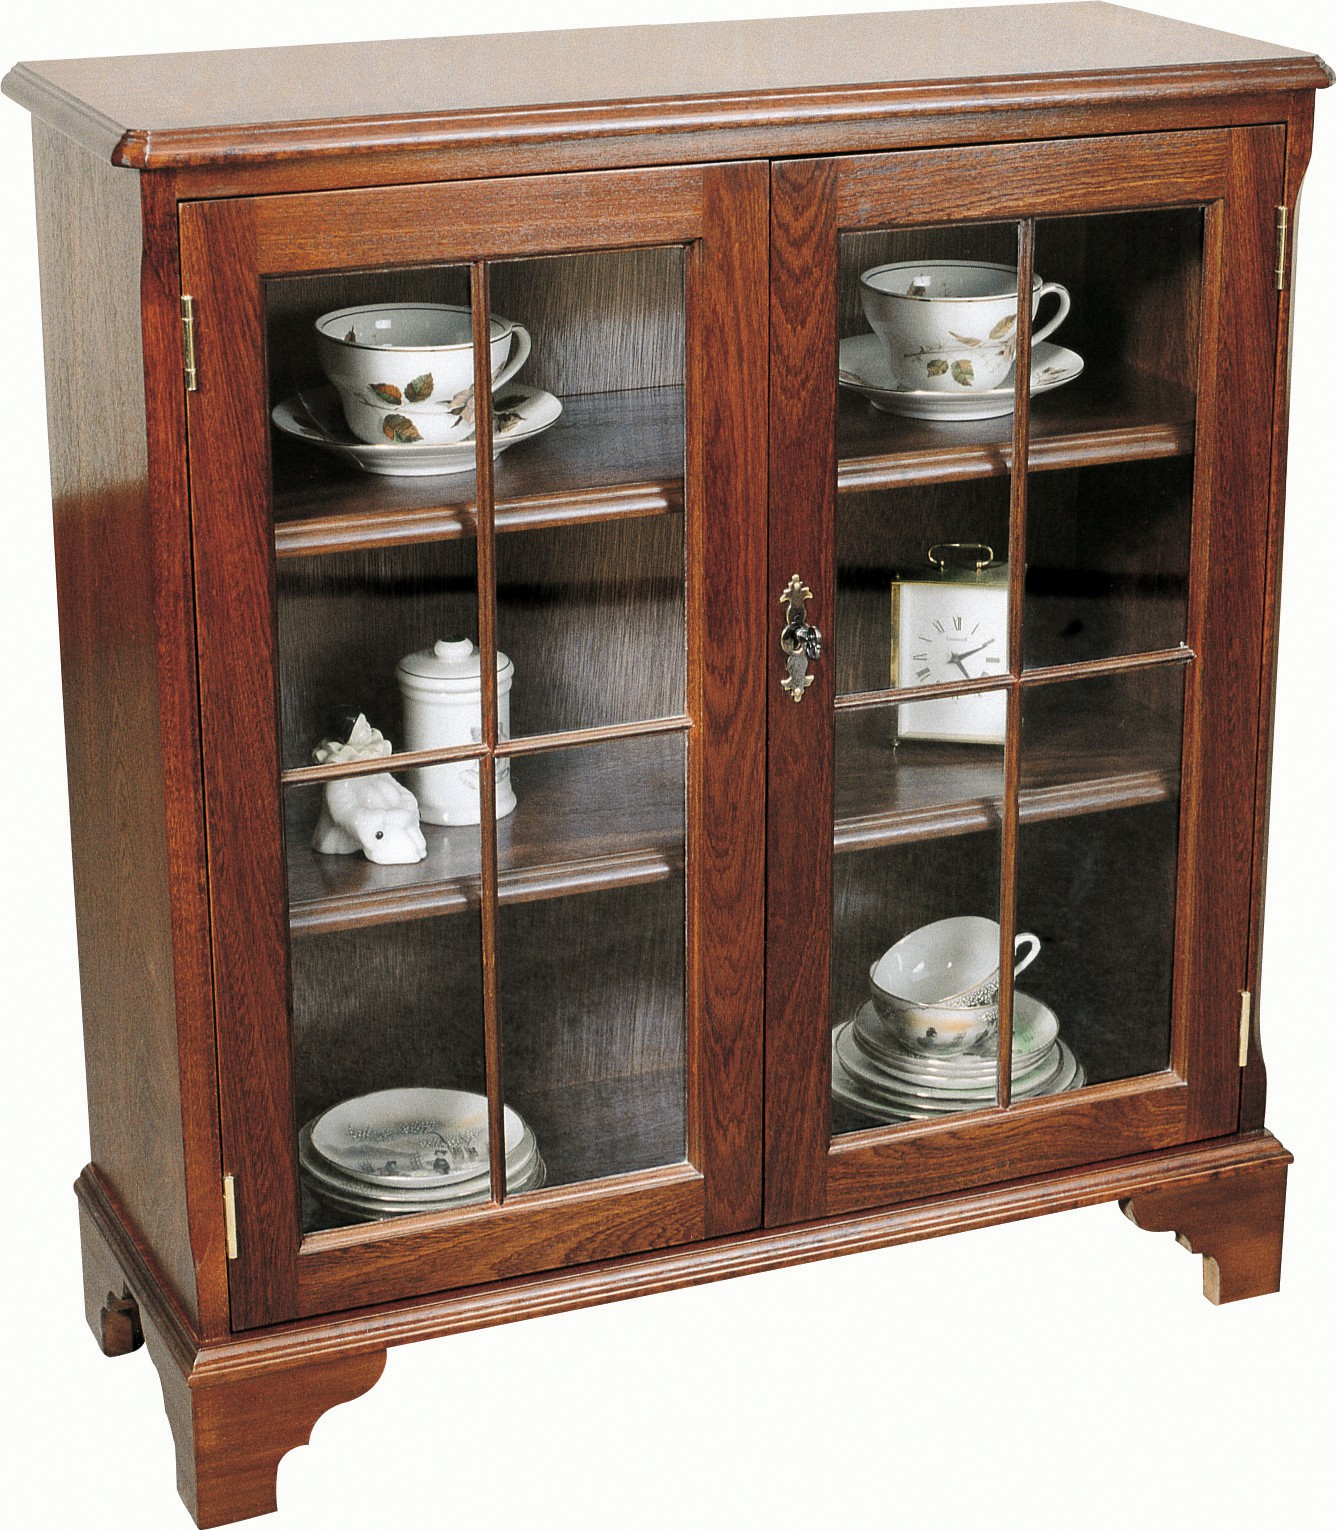 Low China Cabinet Cabinets Decorating Ideas